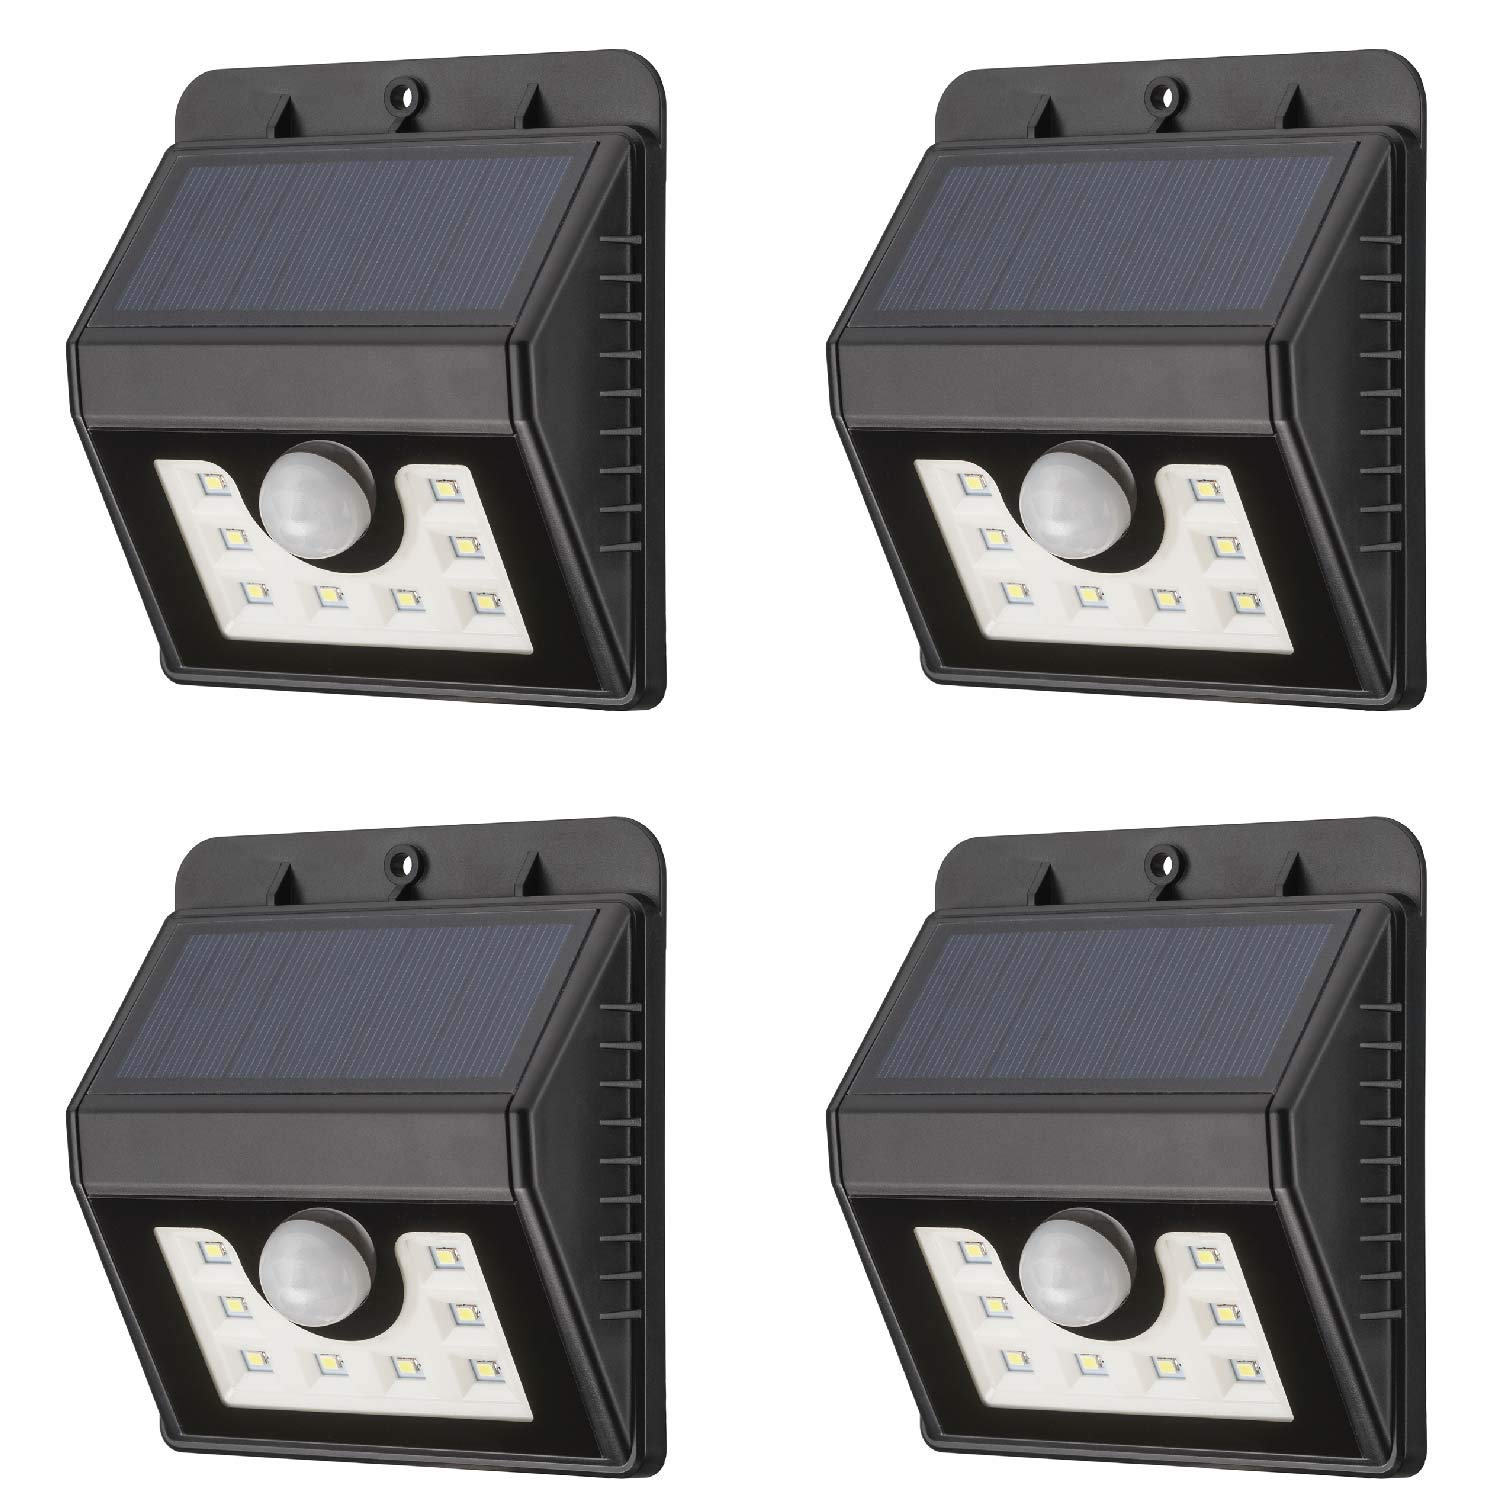 Mr Beams Solar Wedge 8 LED Security Outdoor Motion Sensor Wall Light, 4-Pack, Black by Mr. Beams